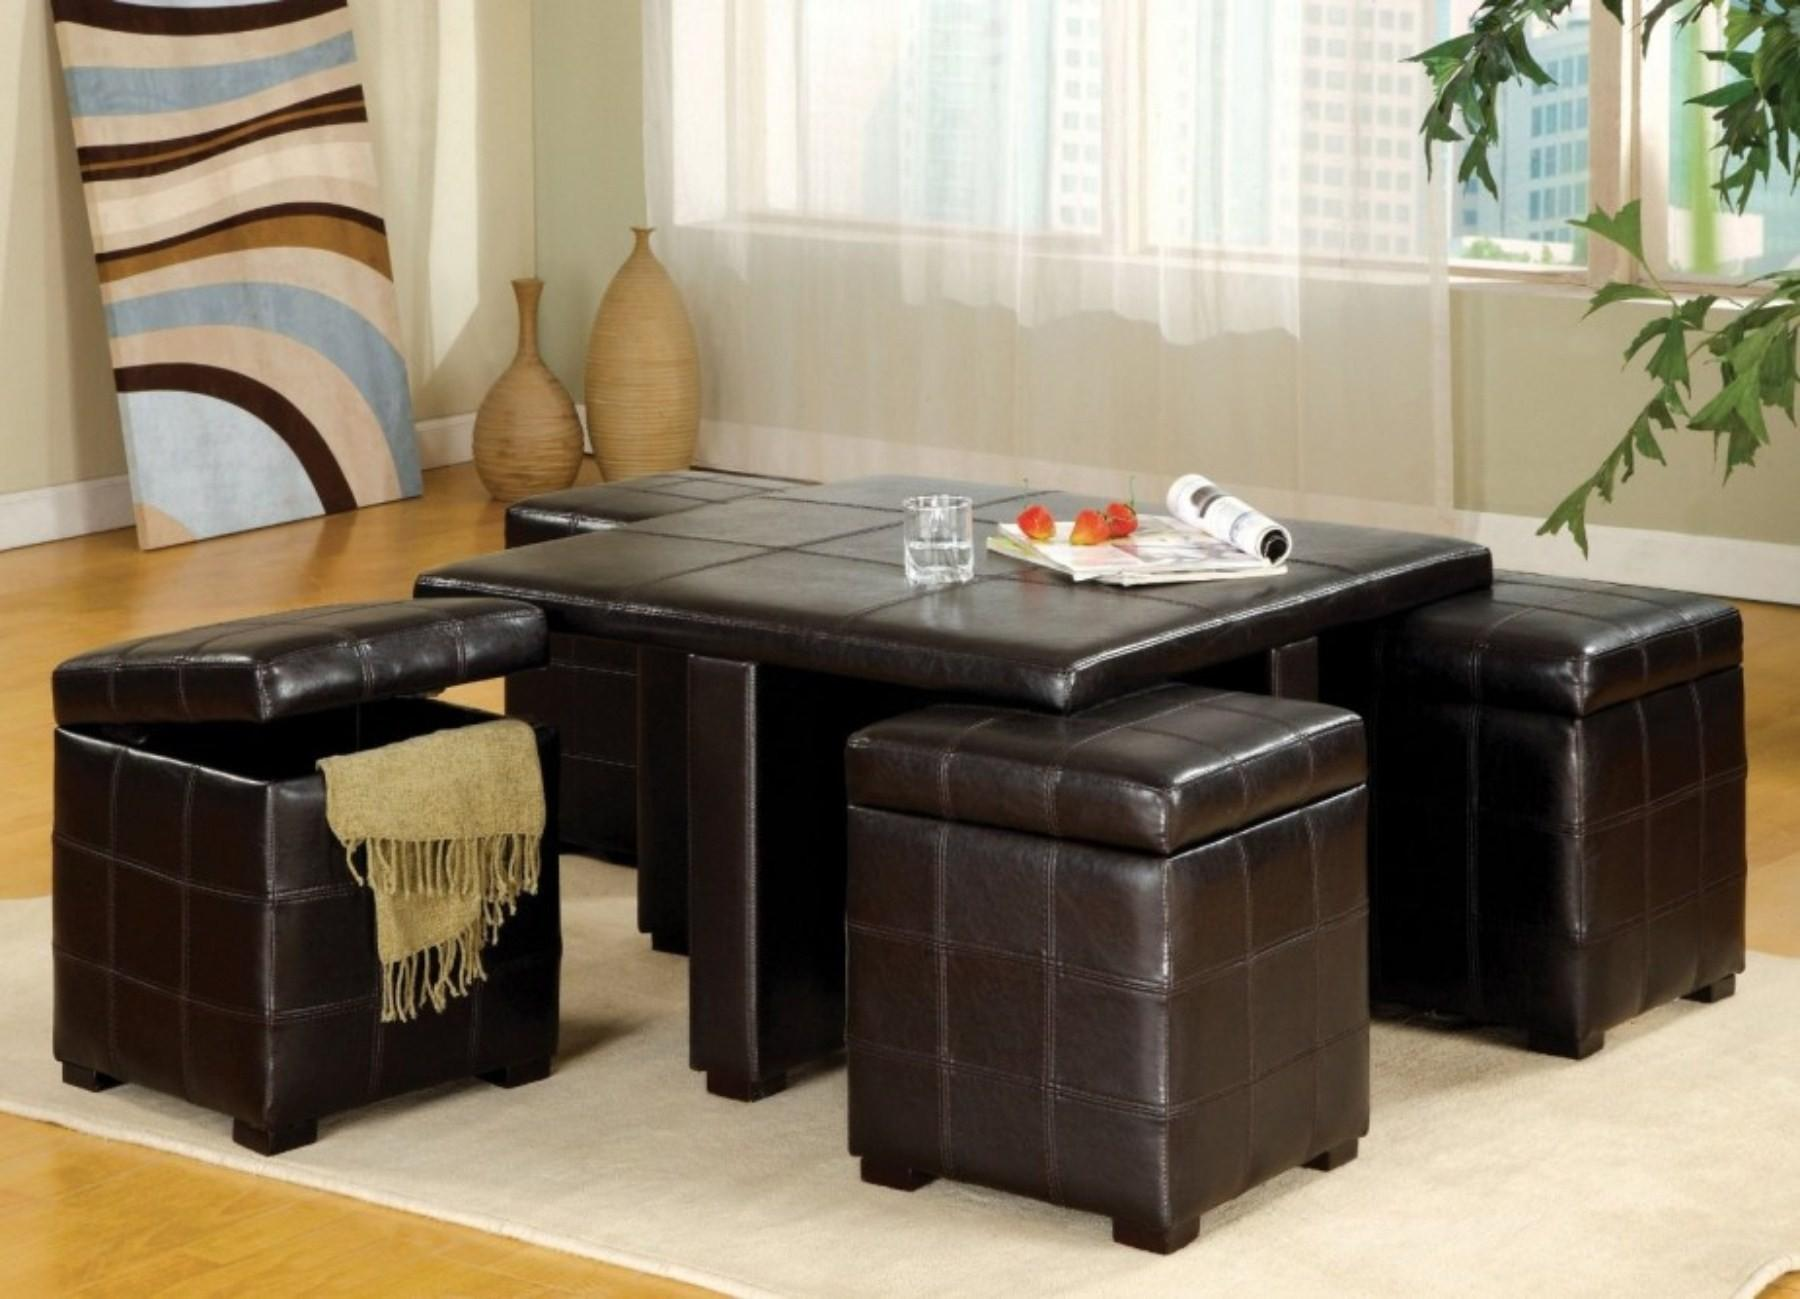 Trendy Coffee Tables Dark Brown Leather Stools Nytexas